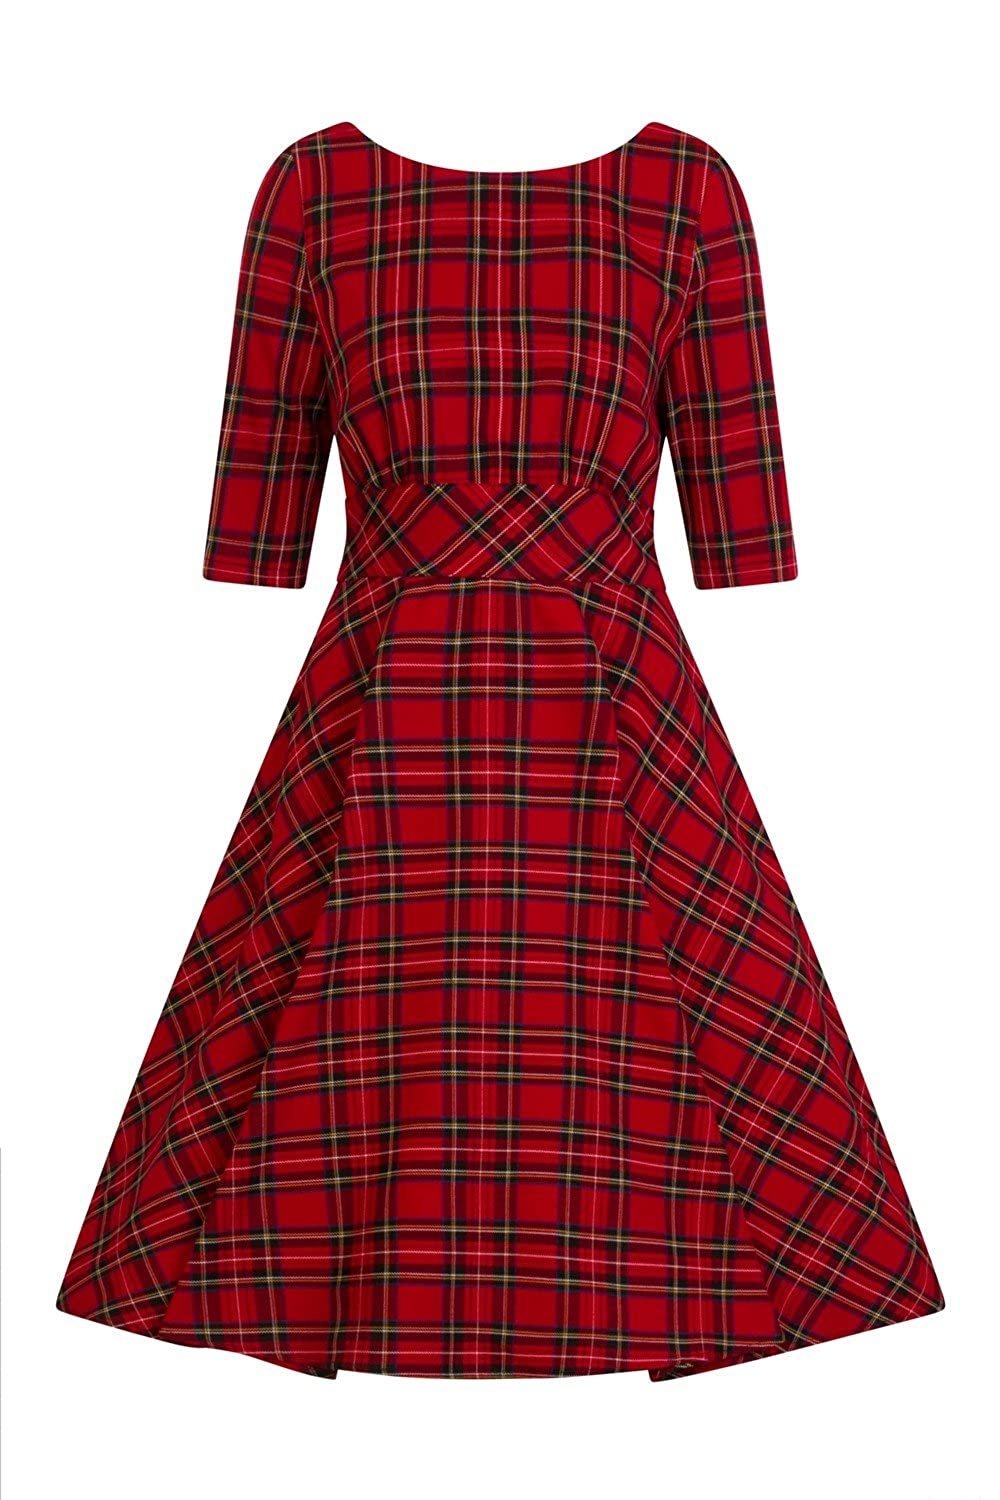 1950s Plus Size Dresses, Swing Dresses Hell Bunny Irvine Tartan 1950s Vintage Retro Dress XS-4XL $72.99 AT vintagedancer.com